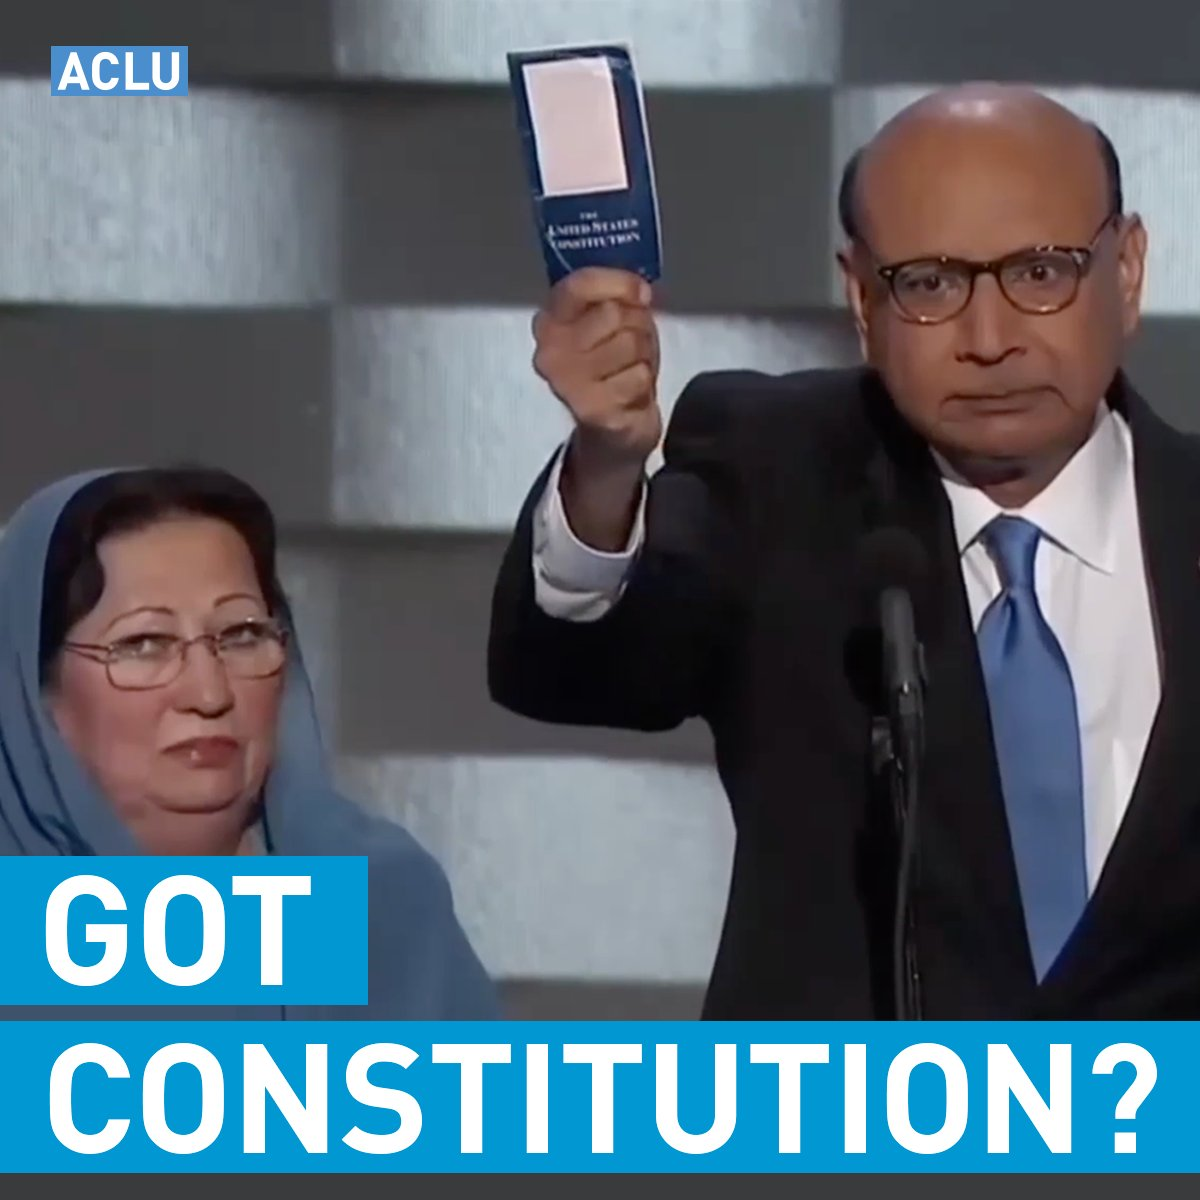 In honor of Khizr Khan, get your FREE POCKET CONSTITUTION: https://t.co/wZdkZIahpi https://t.co/875YWCeNZZ